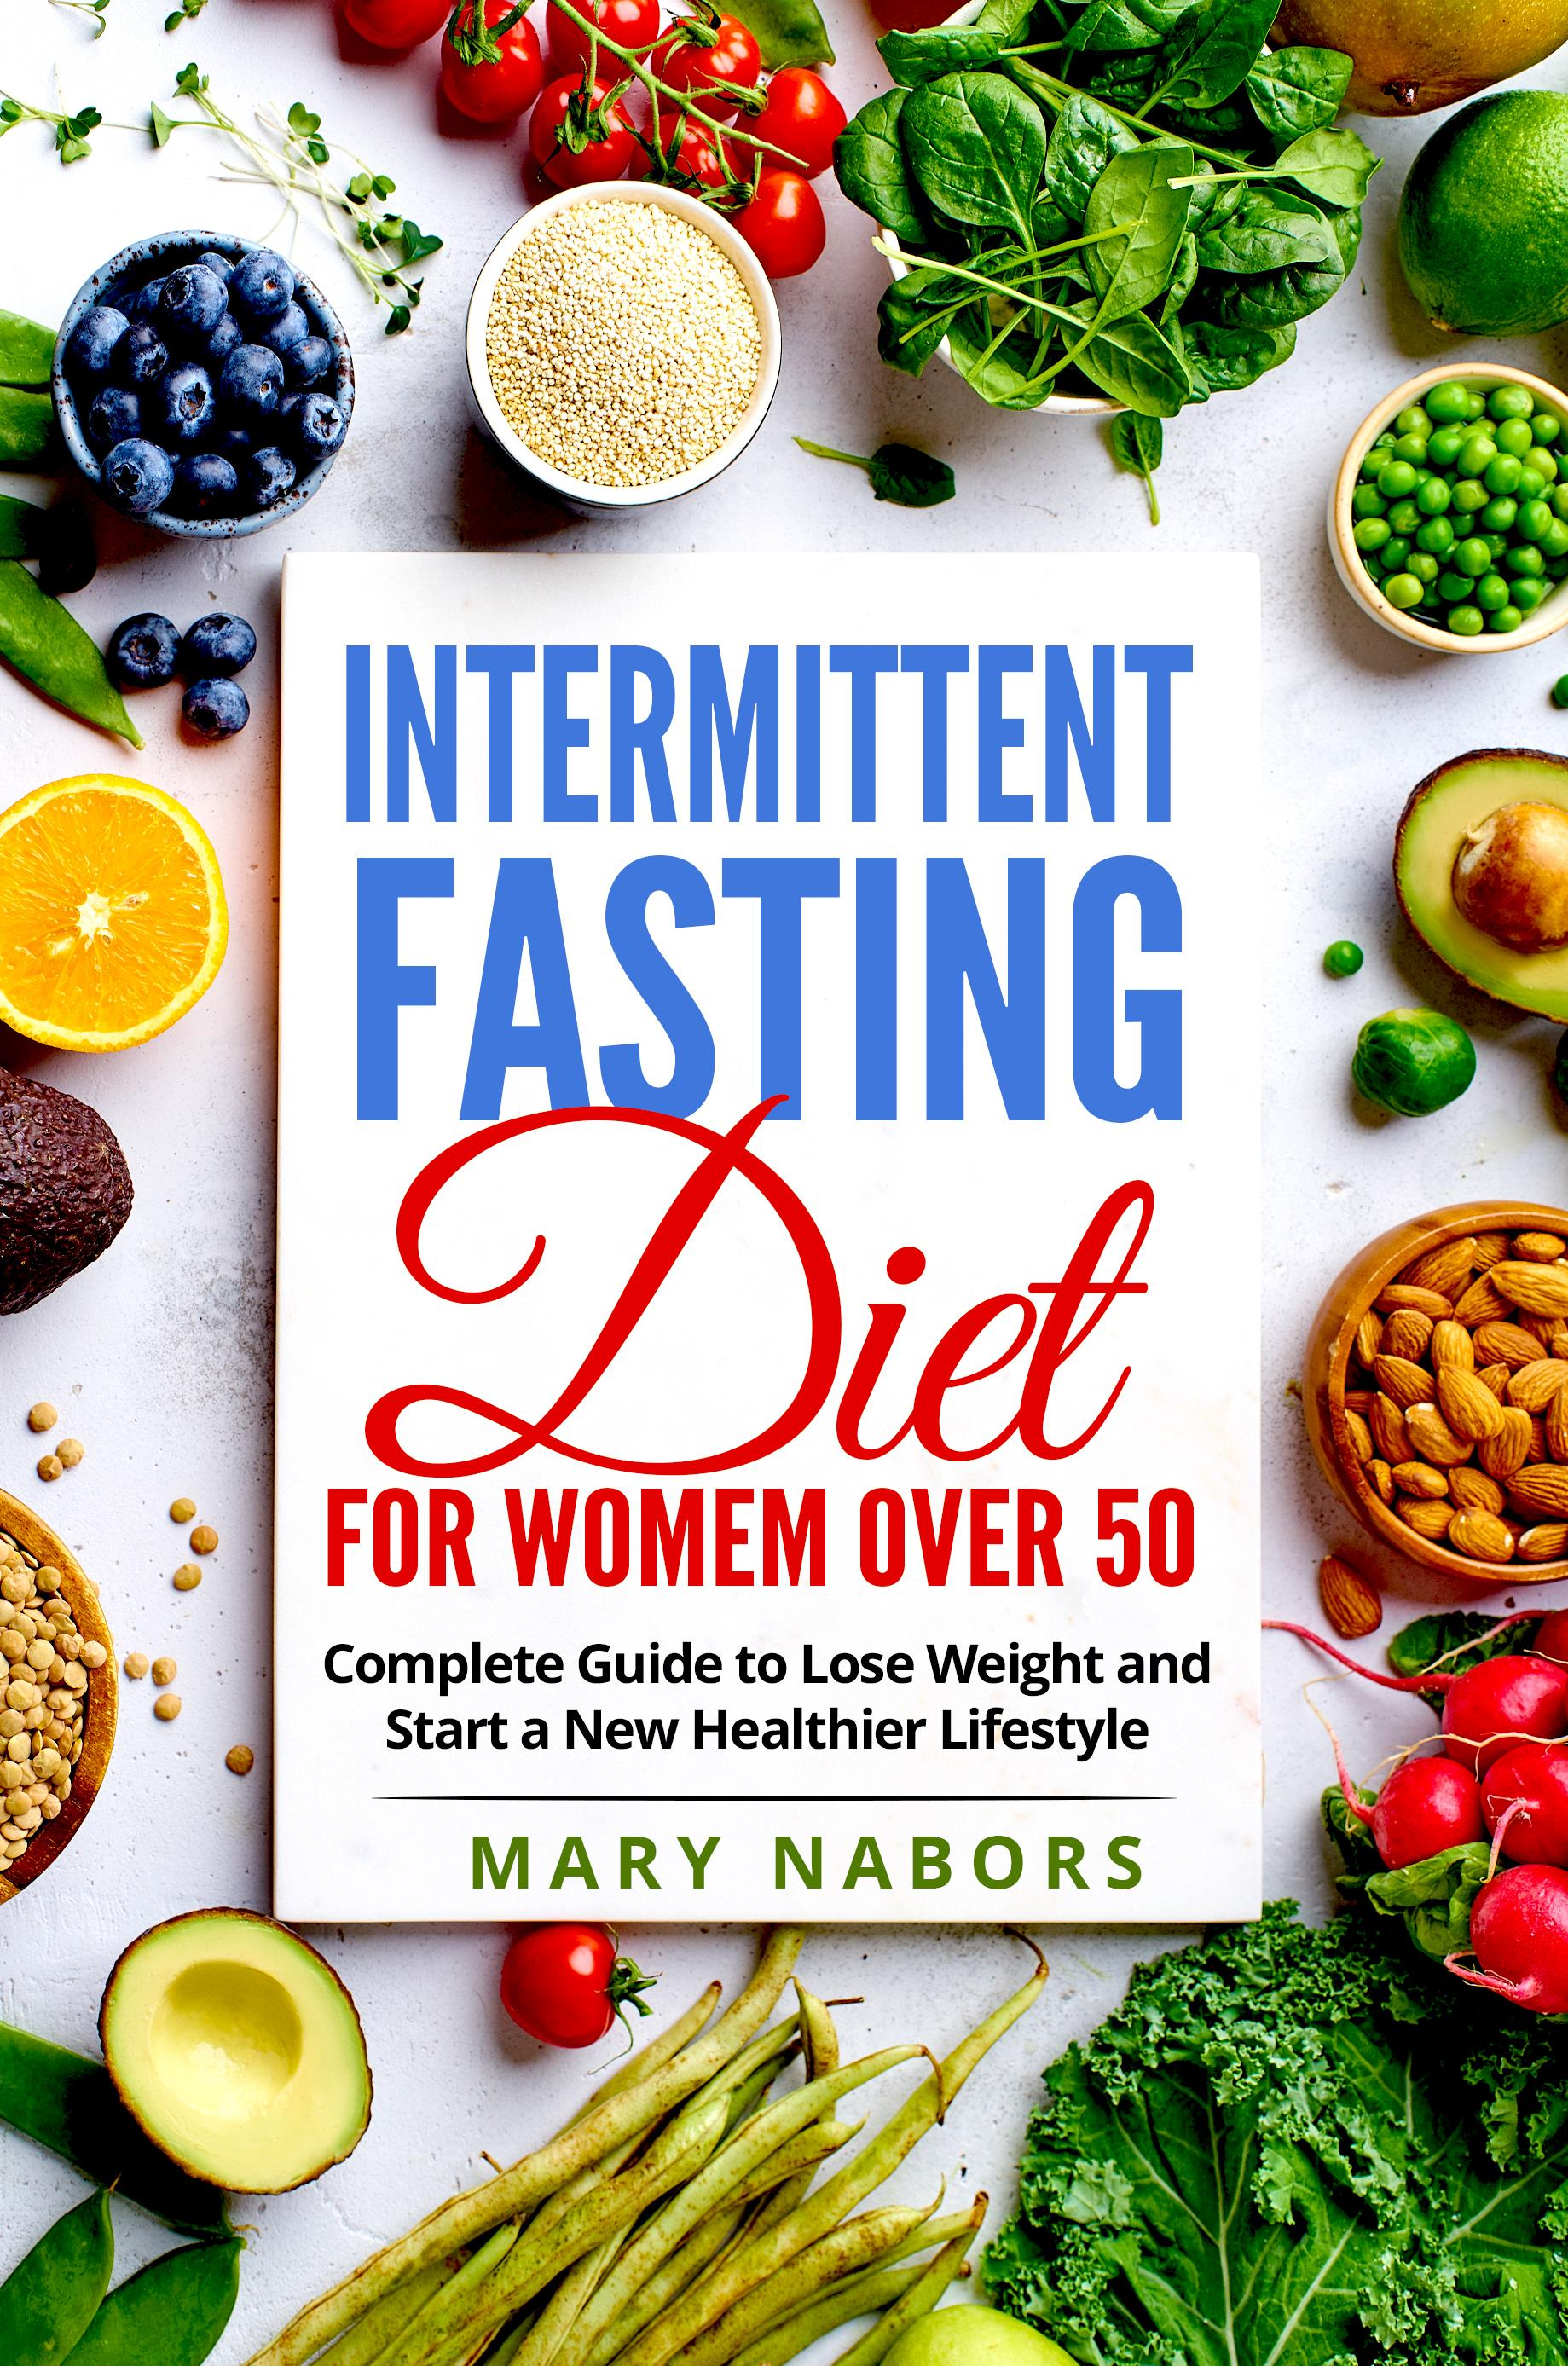 Intermittent fasting diet for women over 50